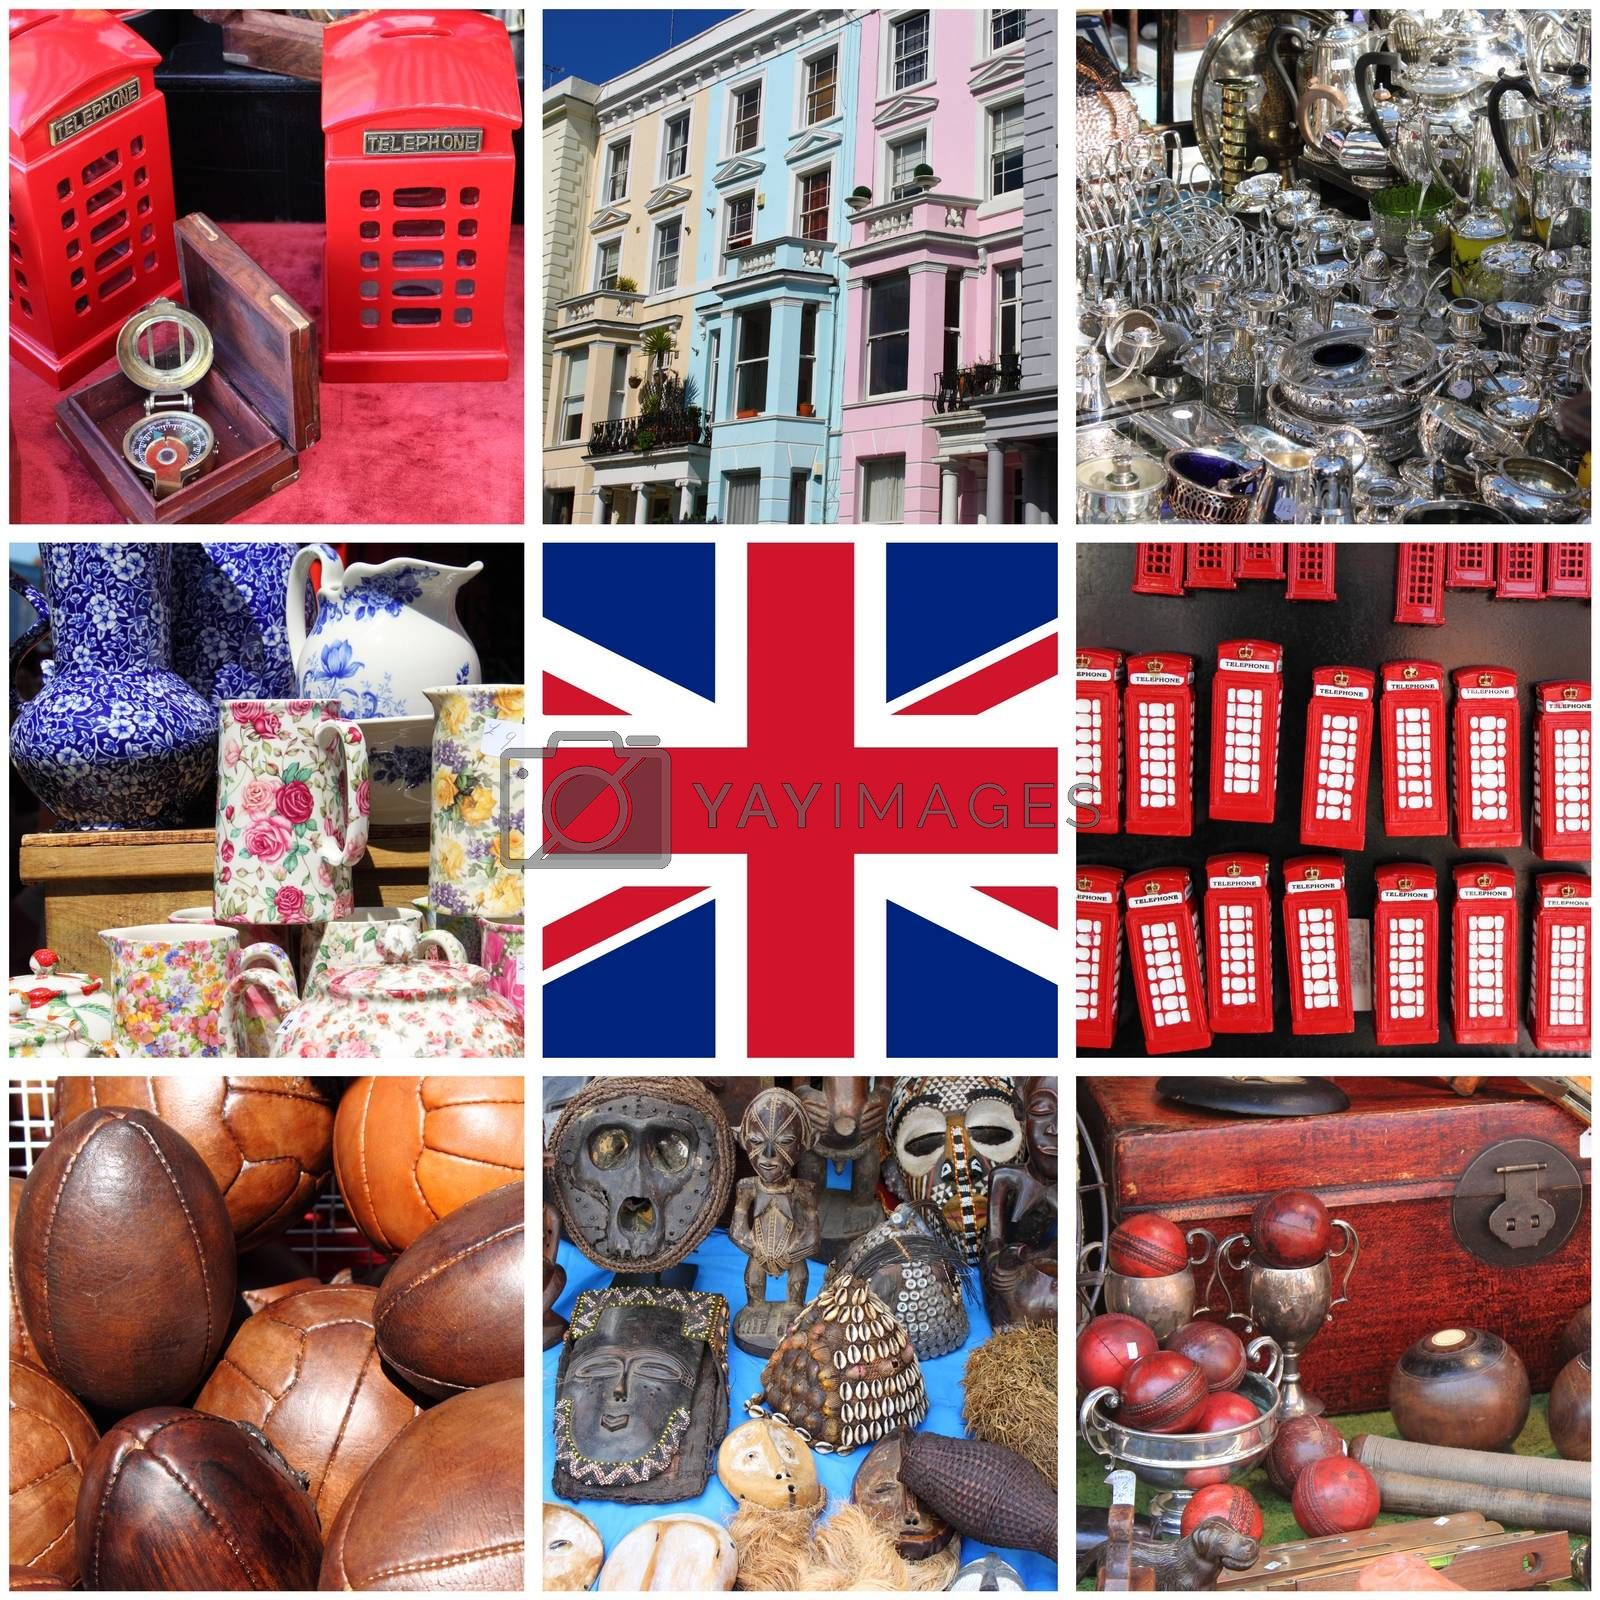 Collage of images of Portobello Road Market by alessandro0770